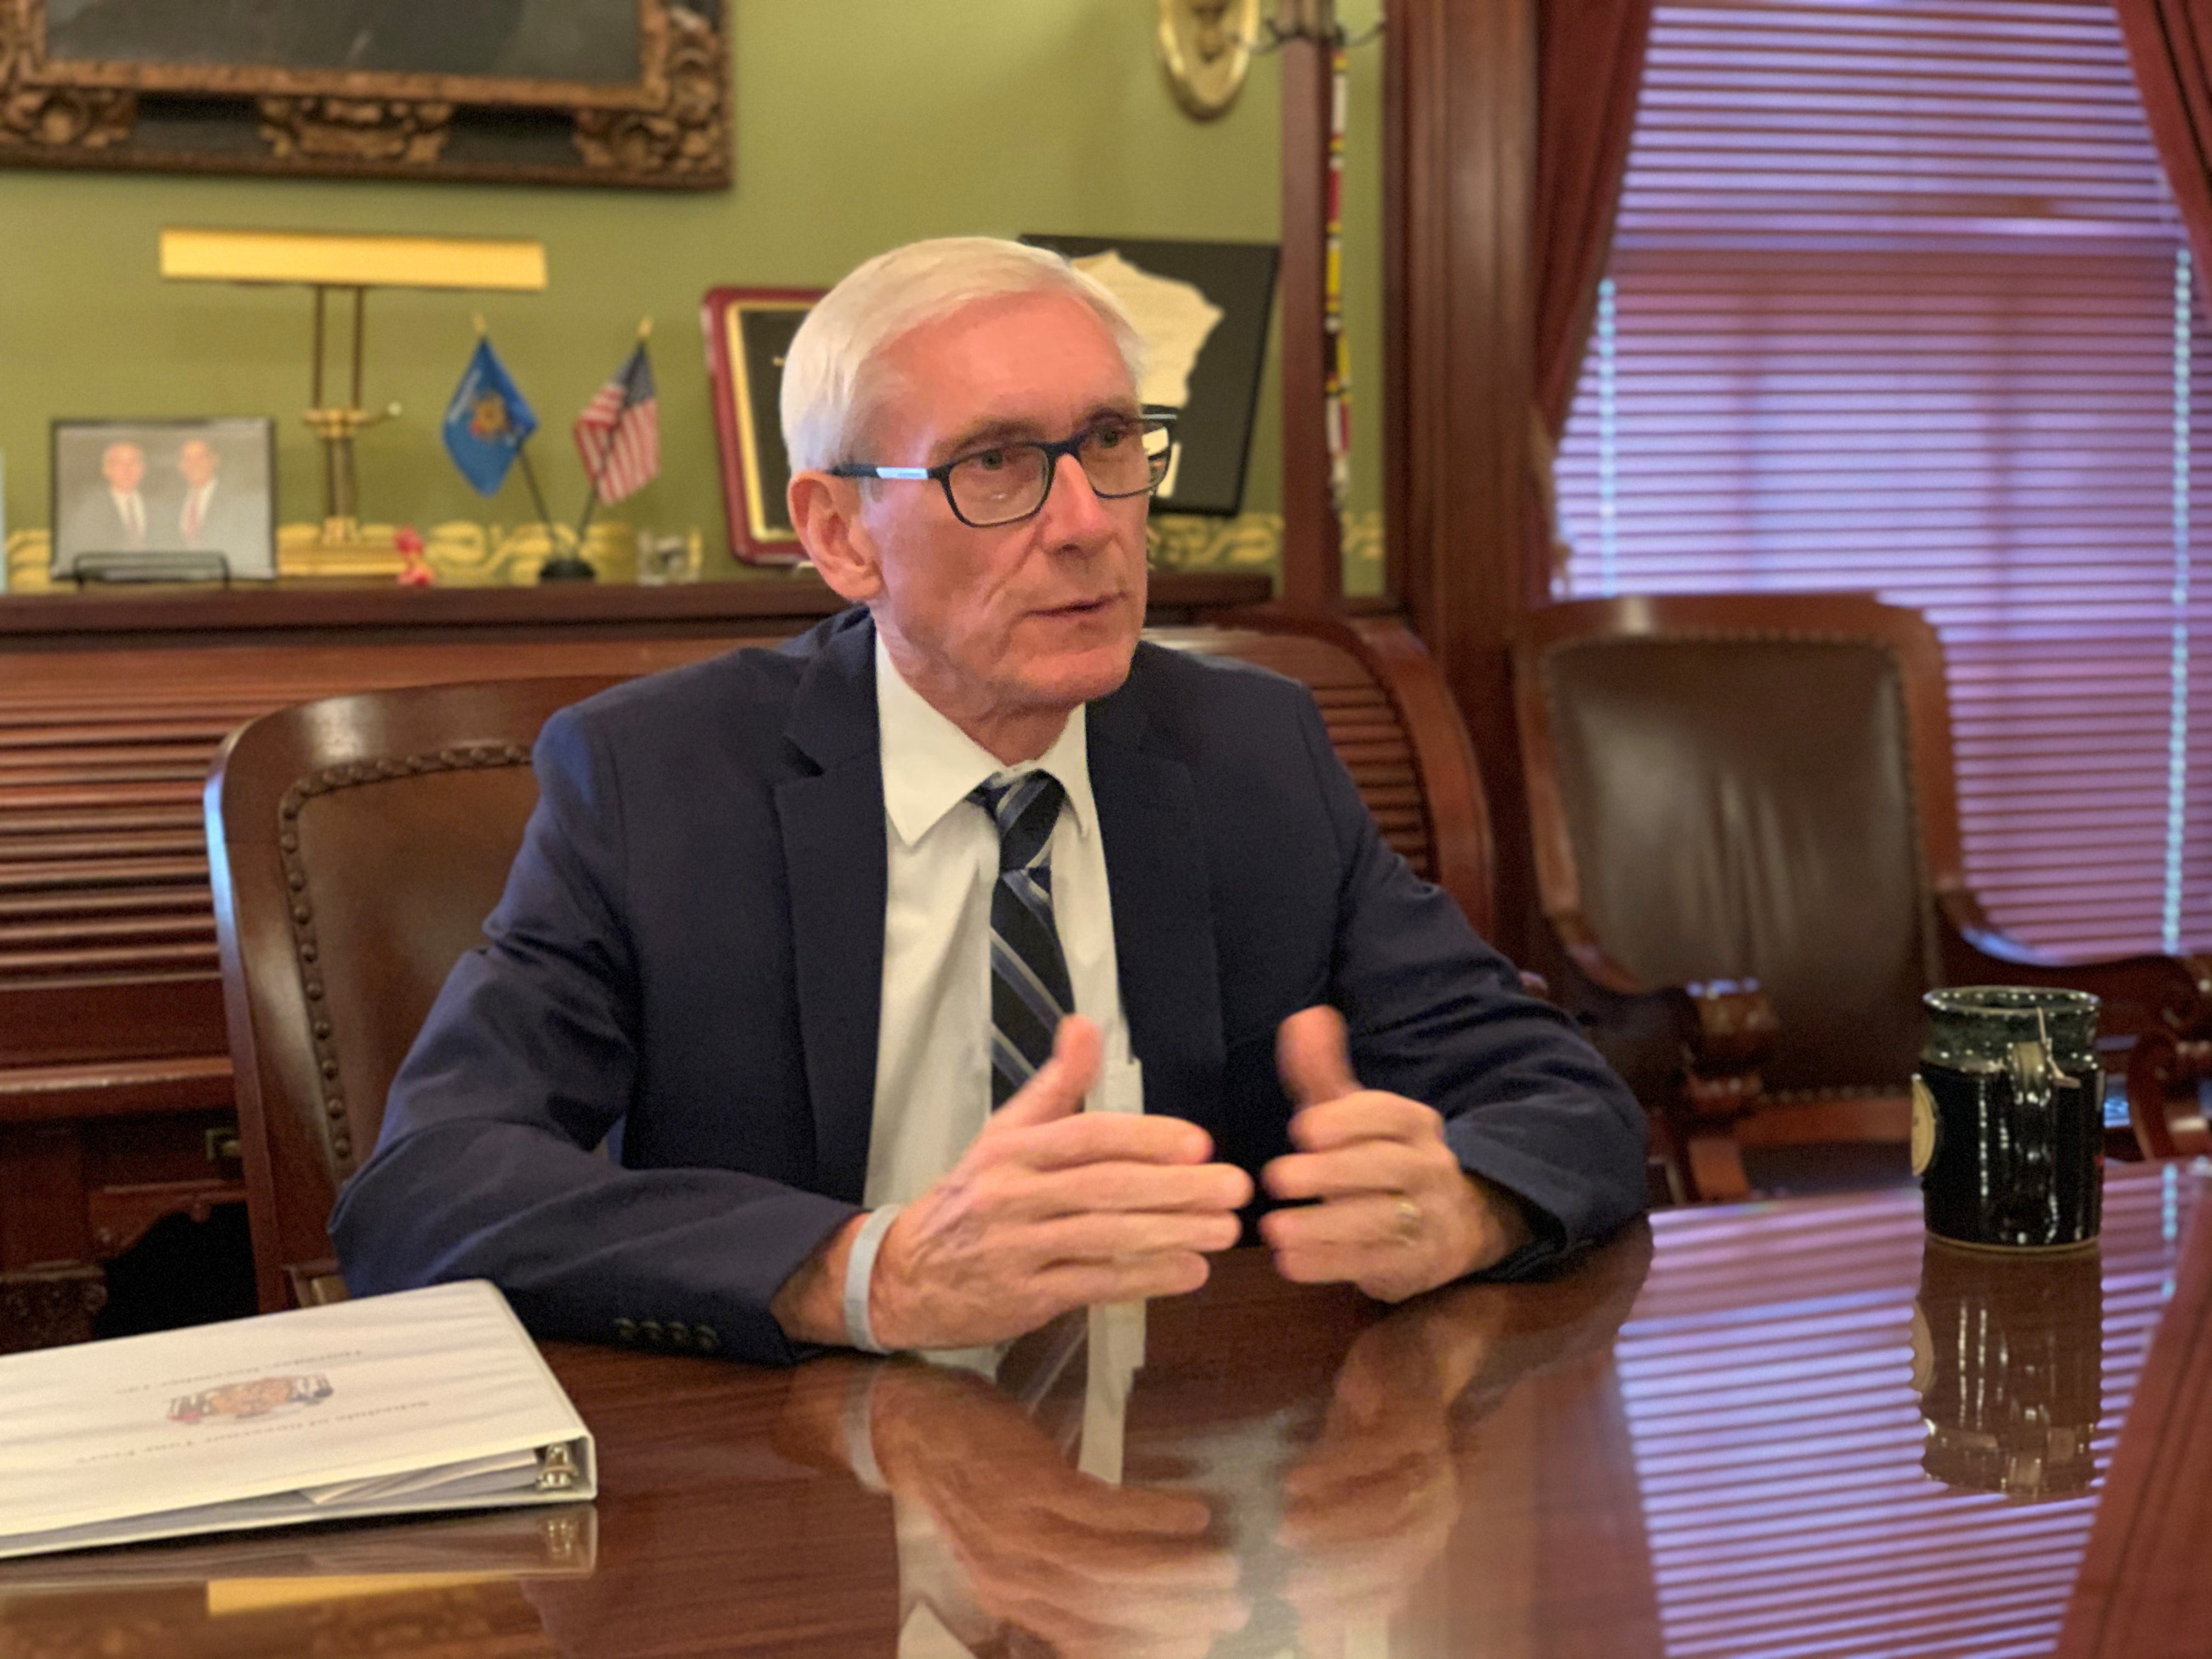 Evers to purchase ventilators and masks after clash with lawmakers over whether he needed legislative approval